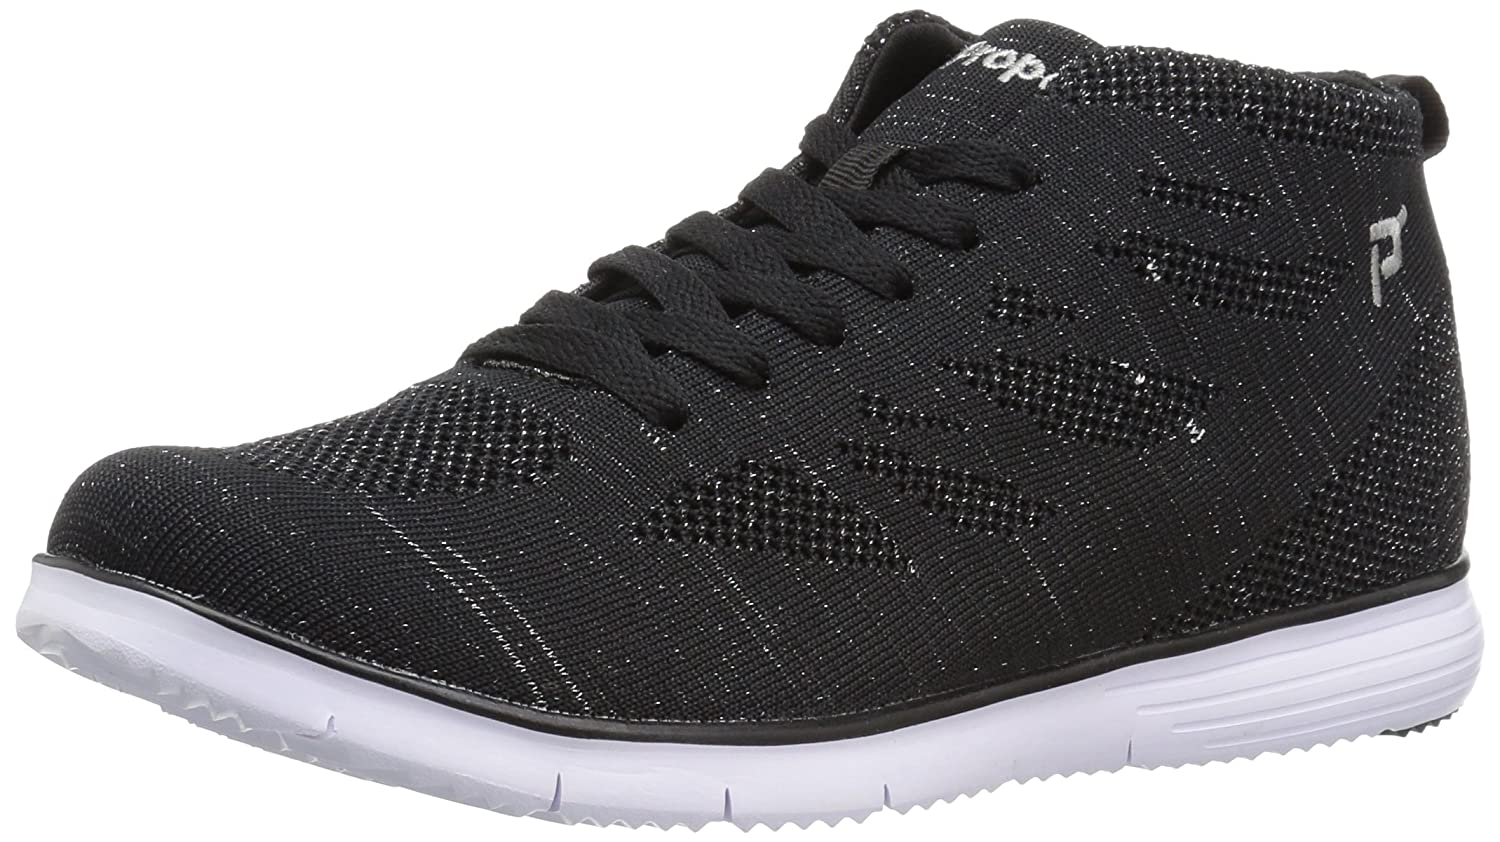 Propet Women's TravelFit Hi Walking Shoe B01N48GTBO 8 2E US|Black Metallic